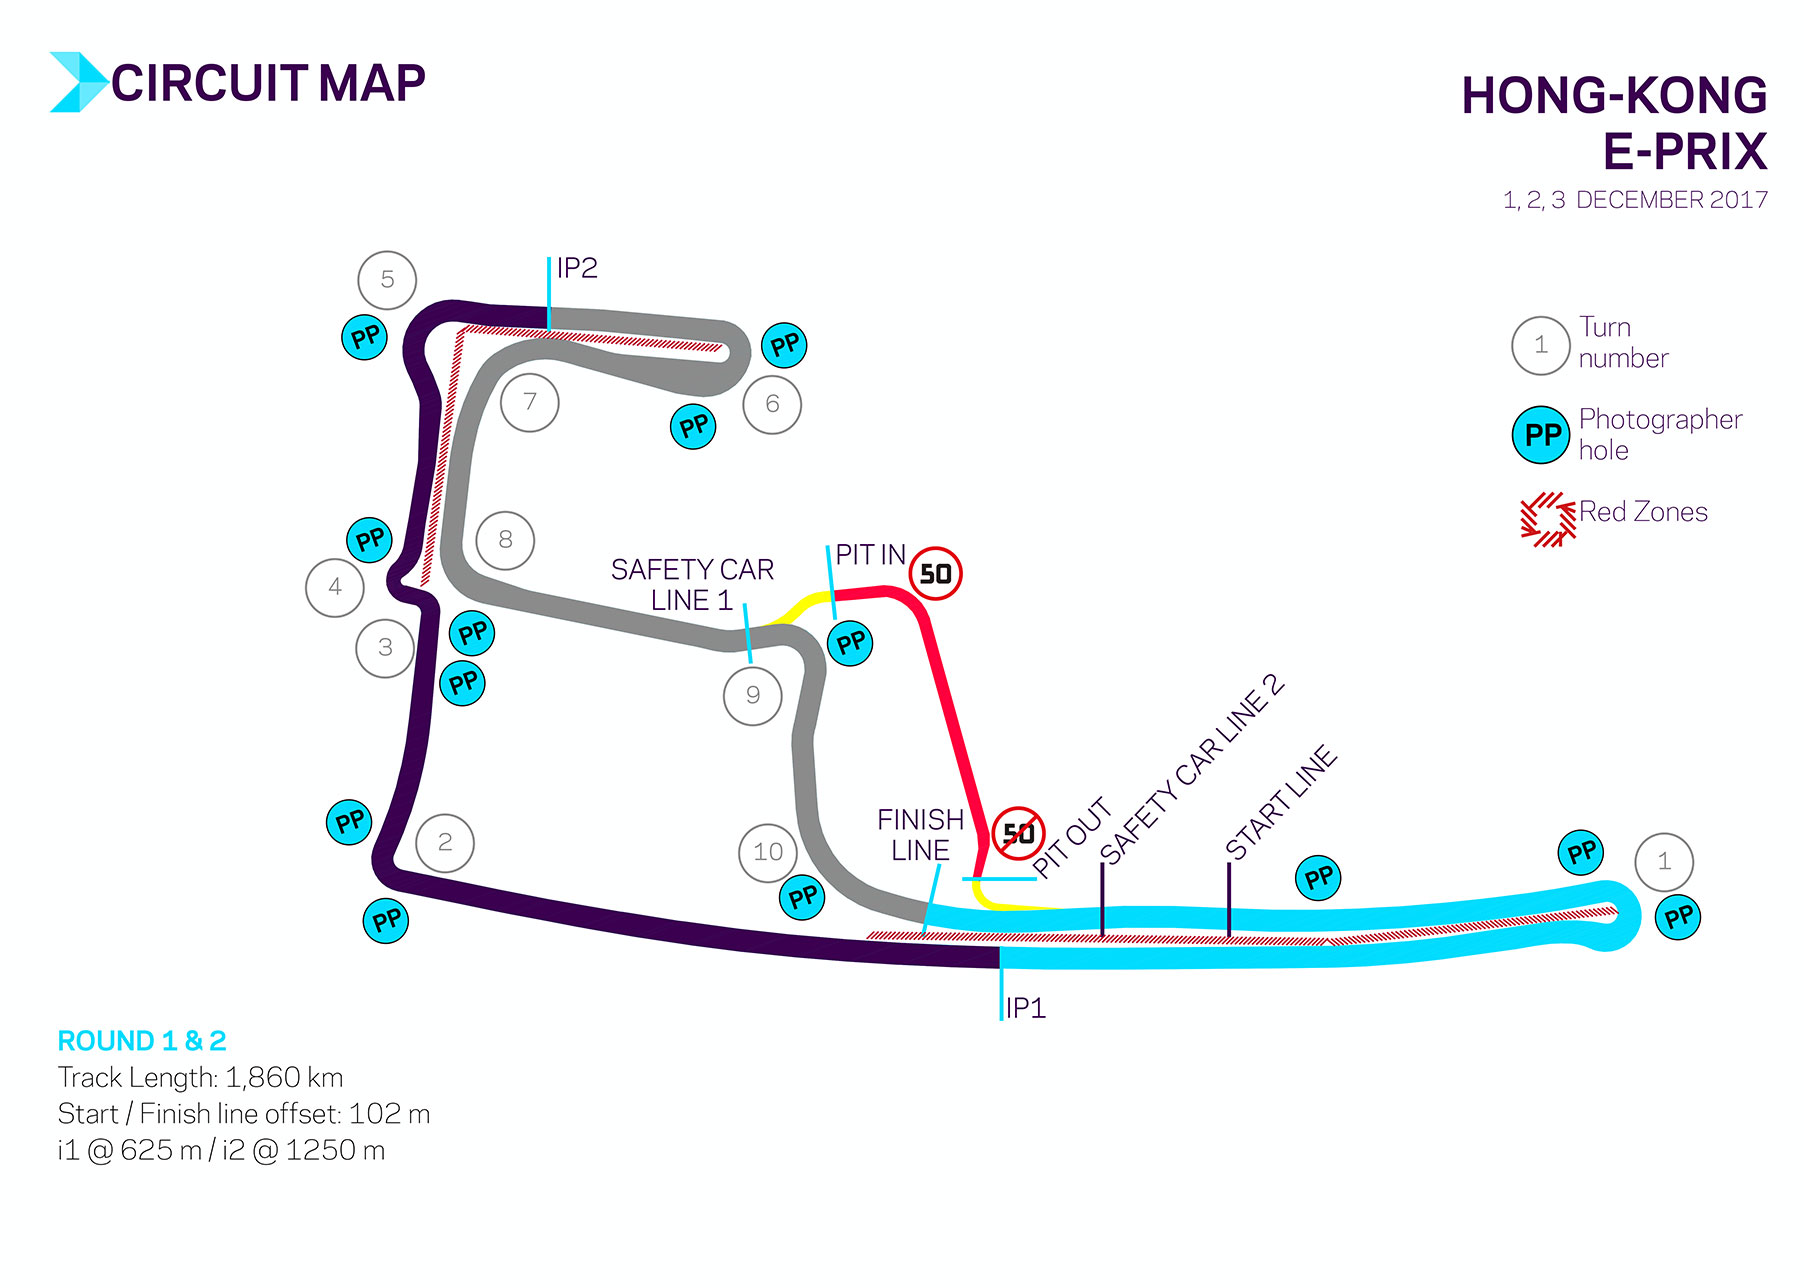 HKT Hong Kong E-Prix - Media information pack